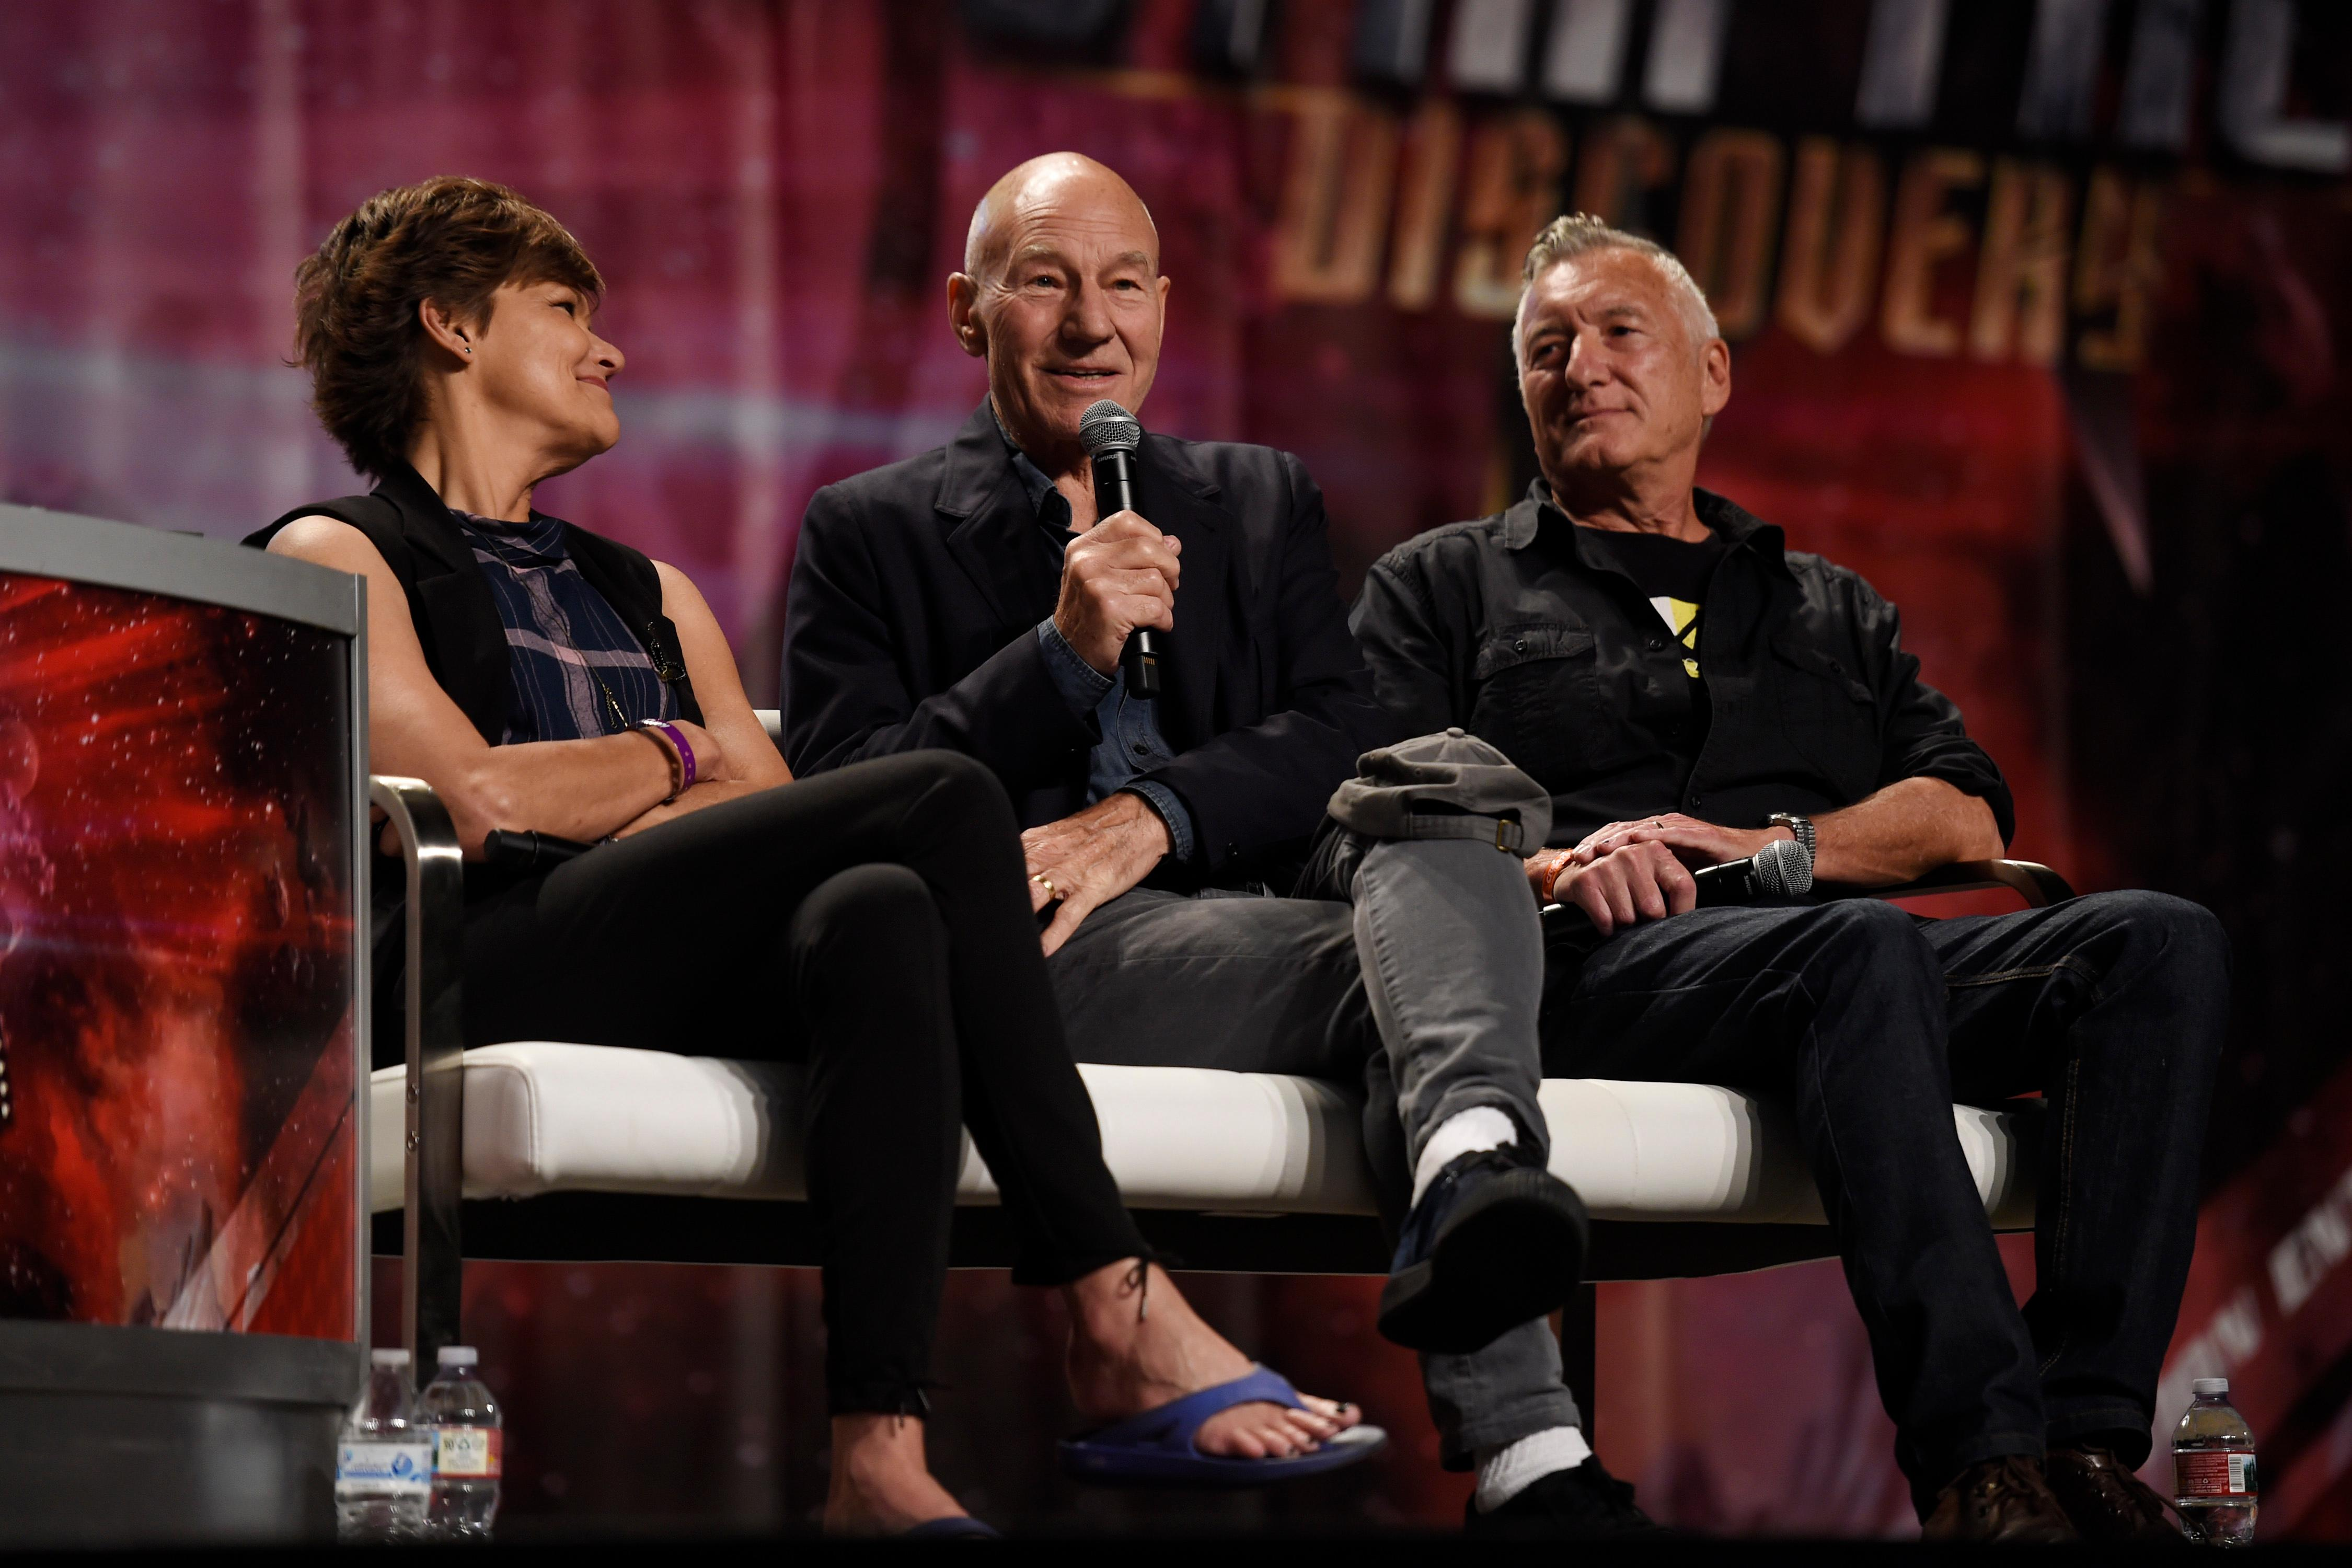 From left, Margot Rose, Sir Patrick Stewart and Morgan Gendel take part in a panel discussion during the 16th annual Las Vegas Star Trek Convention Saturday, August 5, 2017, at the Rio.  CREDIT: Sam Morris/Las Vegas News Bureau